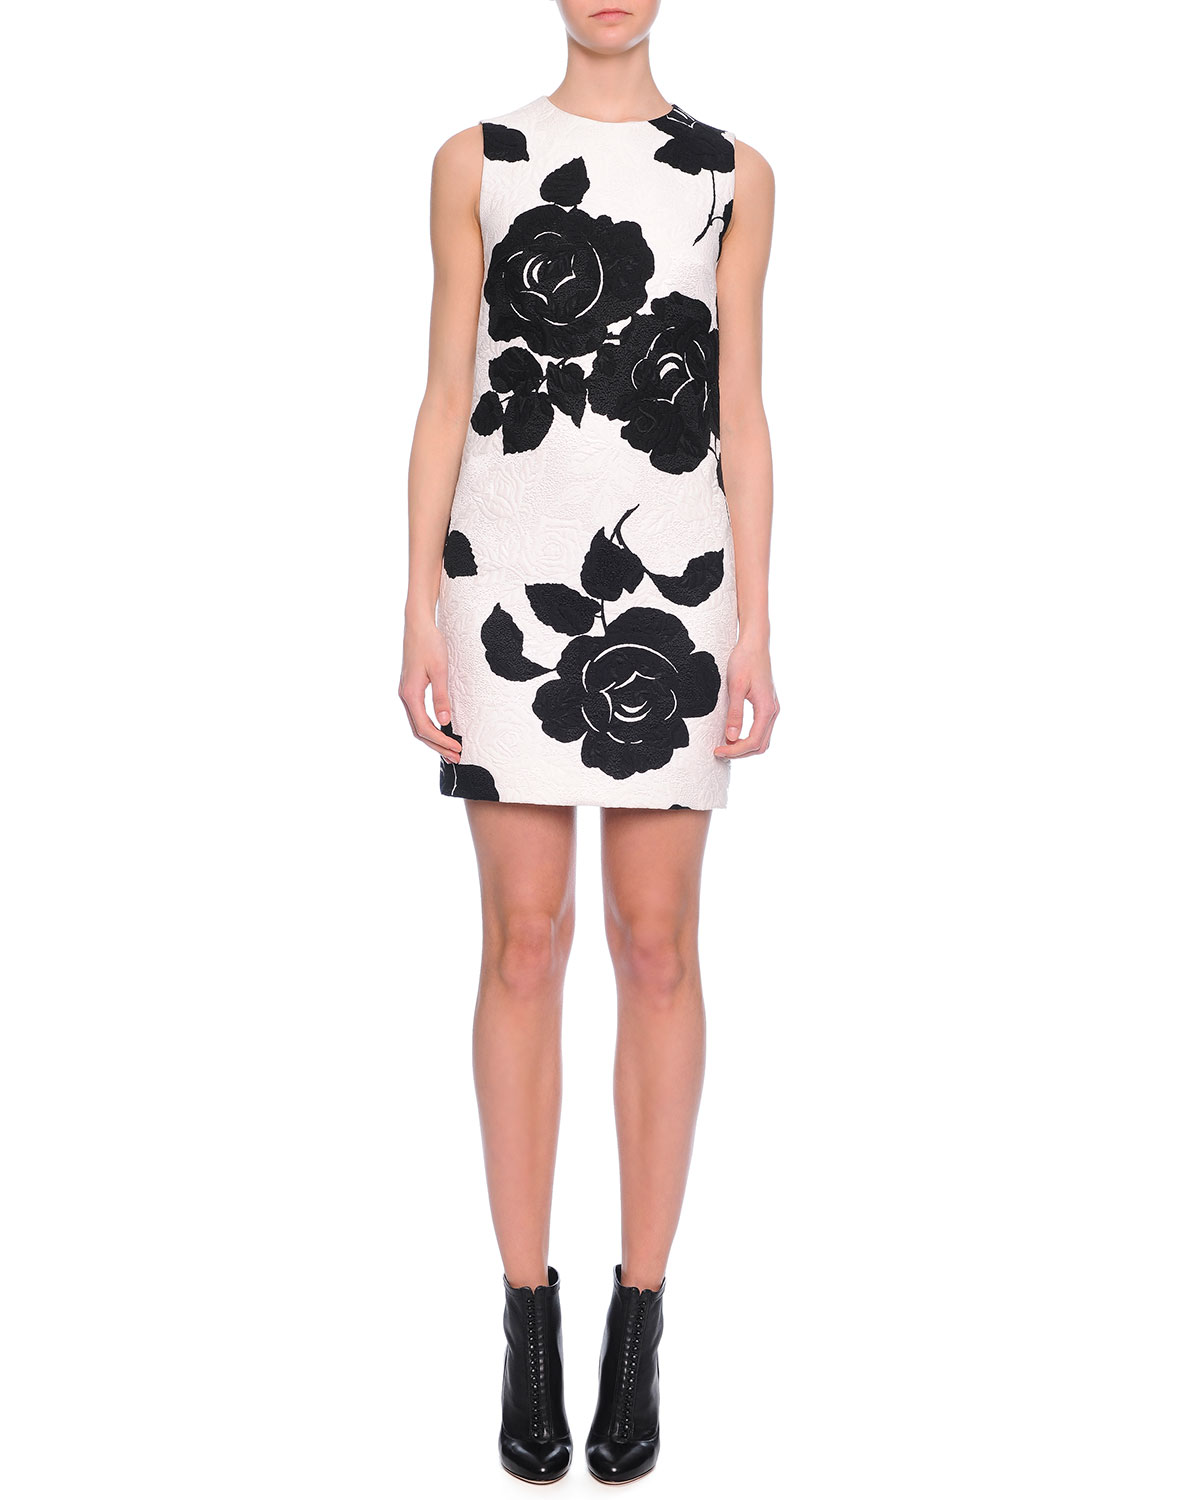 Dolce gabbana floral print shift dress blackwhite neiman marcus floral print shift dress blackwhite mightylinksfo